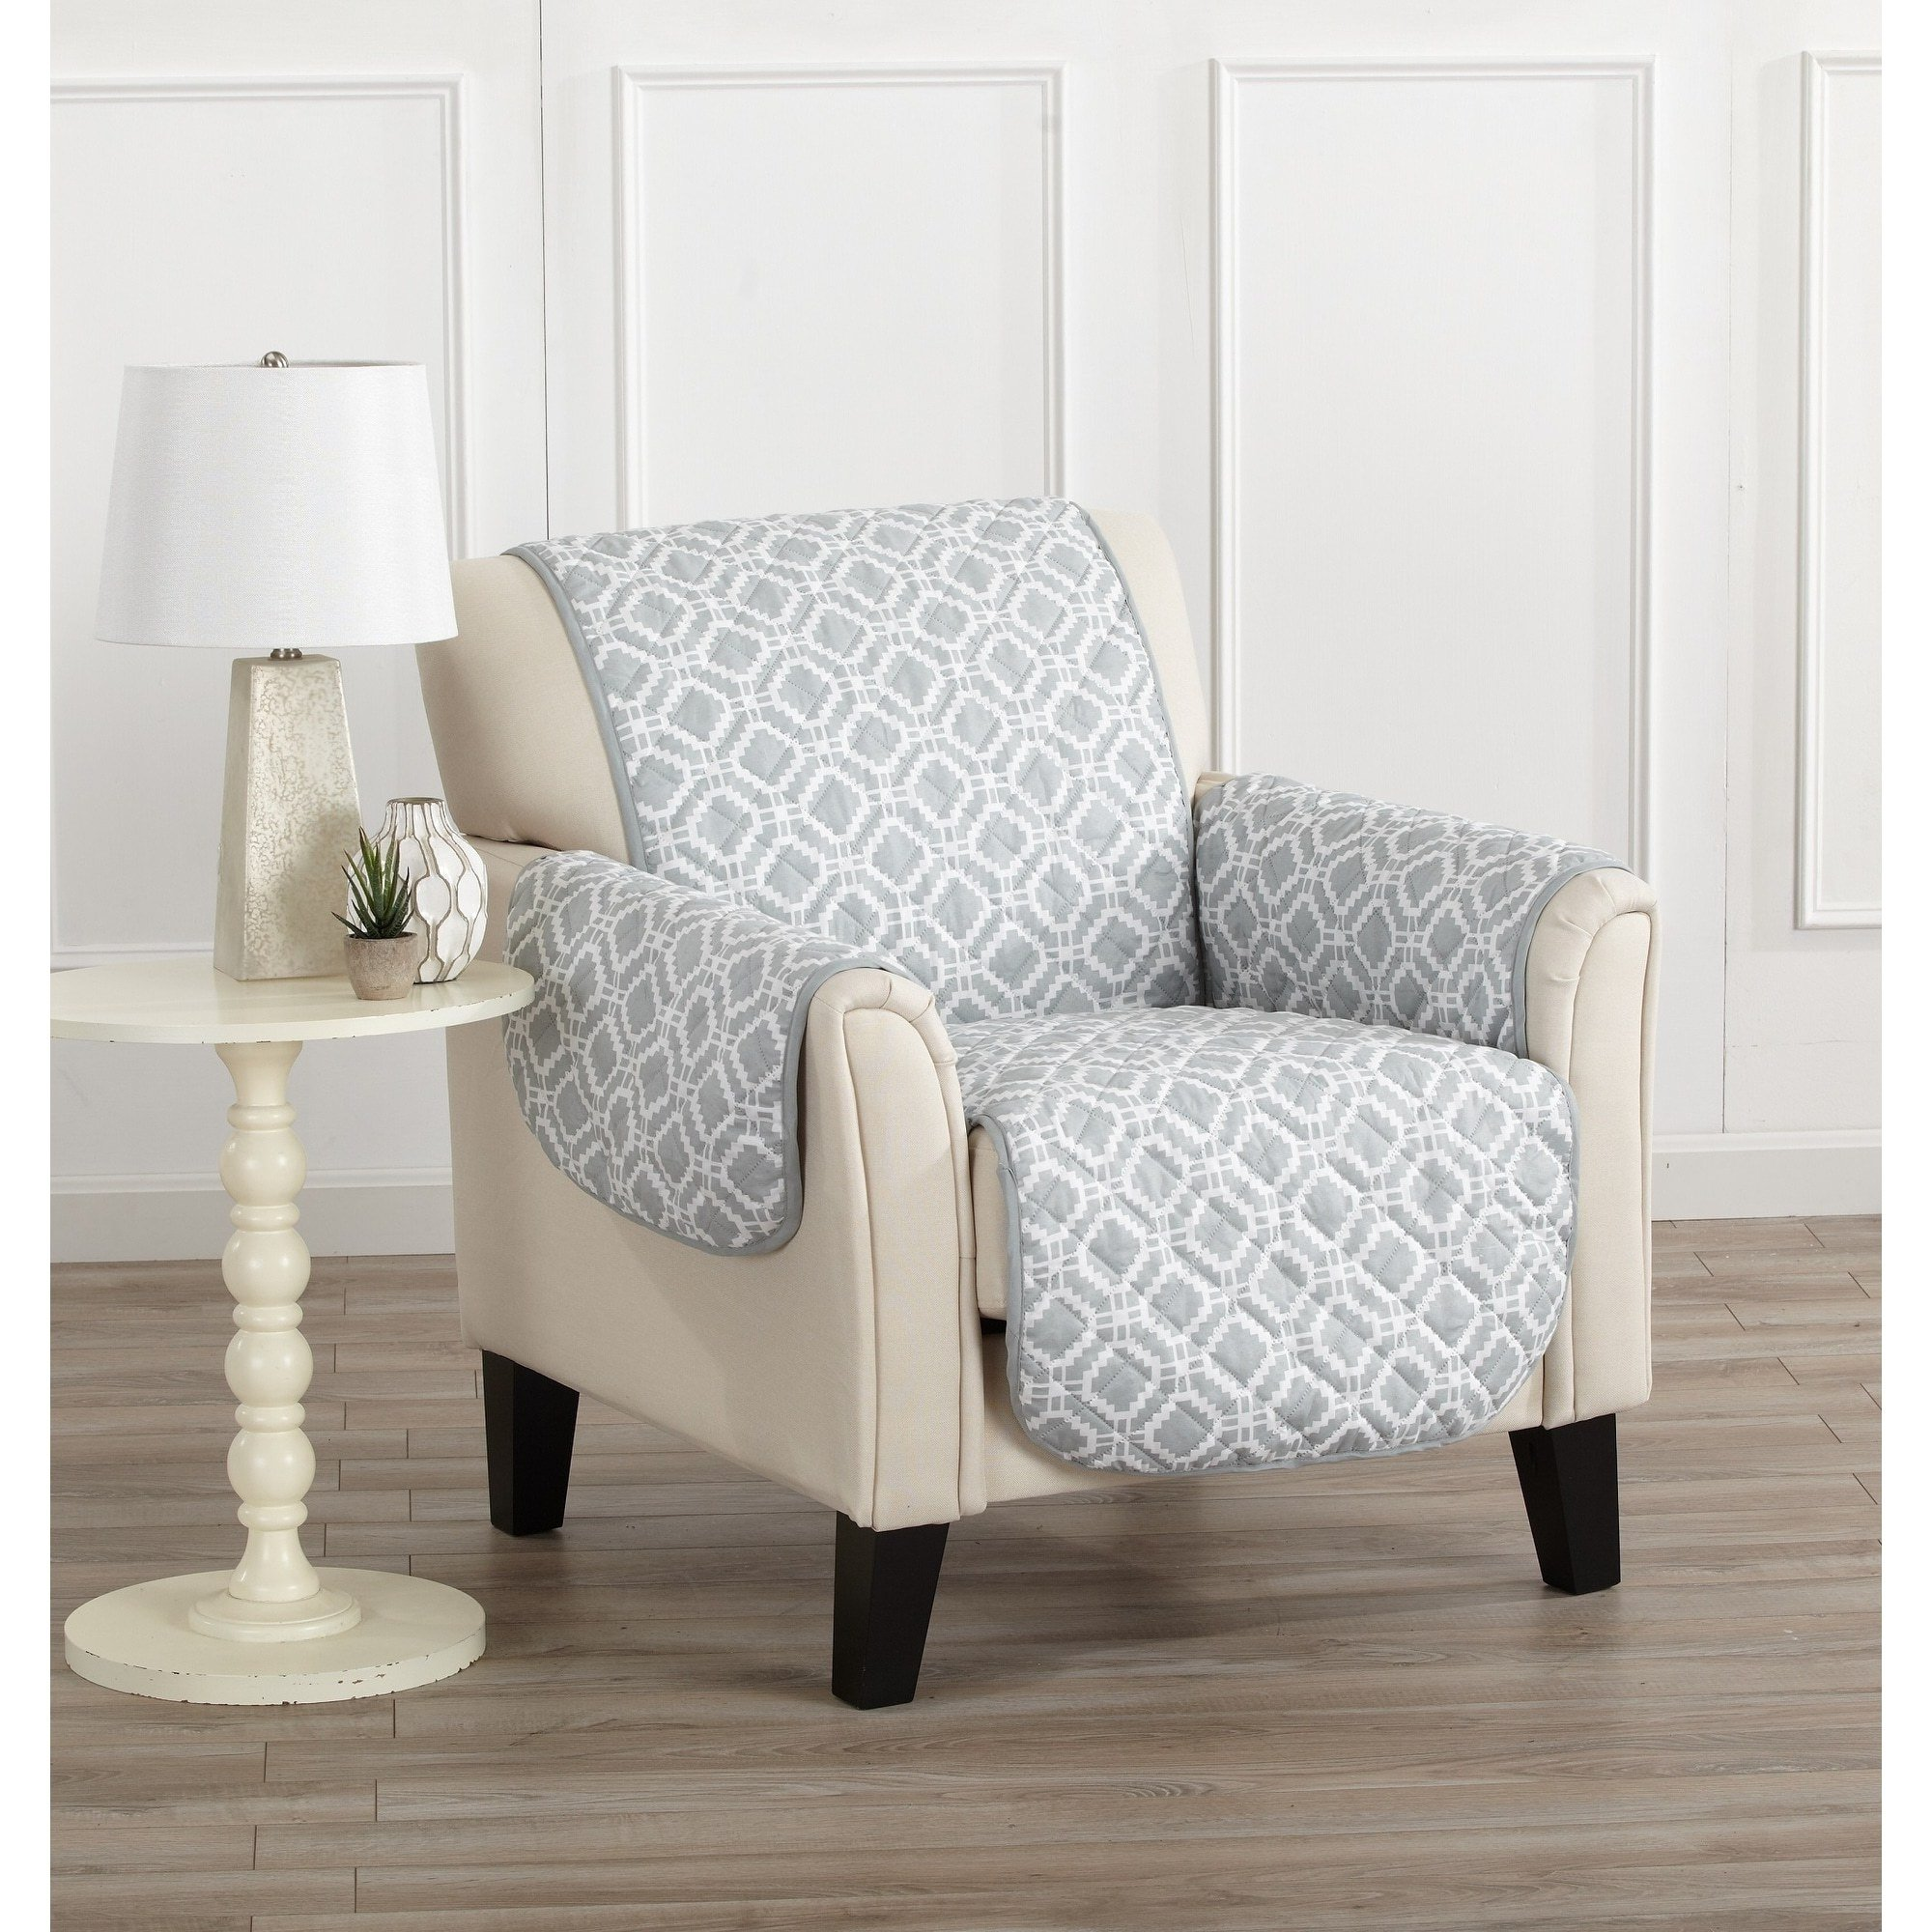 MN 1 Piece Steel Grey Geometric Chair Protector, Gray Medallion Diamond Shape Pattern Circle Dot Ikat Jacquard Modern Sleek Trendy Couch Protection Cover Pets Animals Covers, Polyester